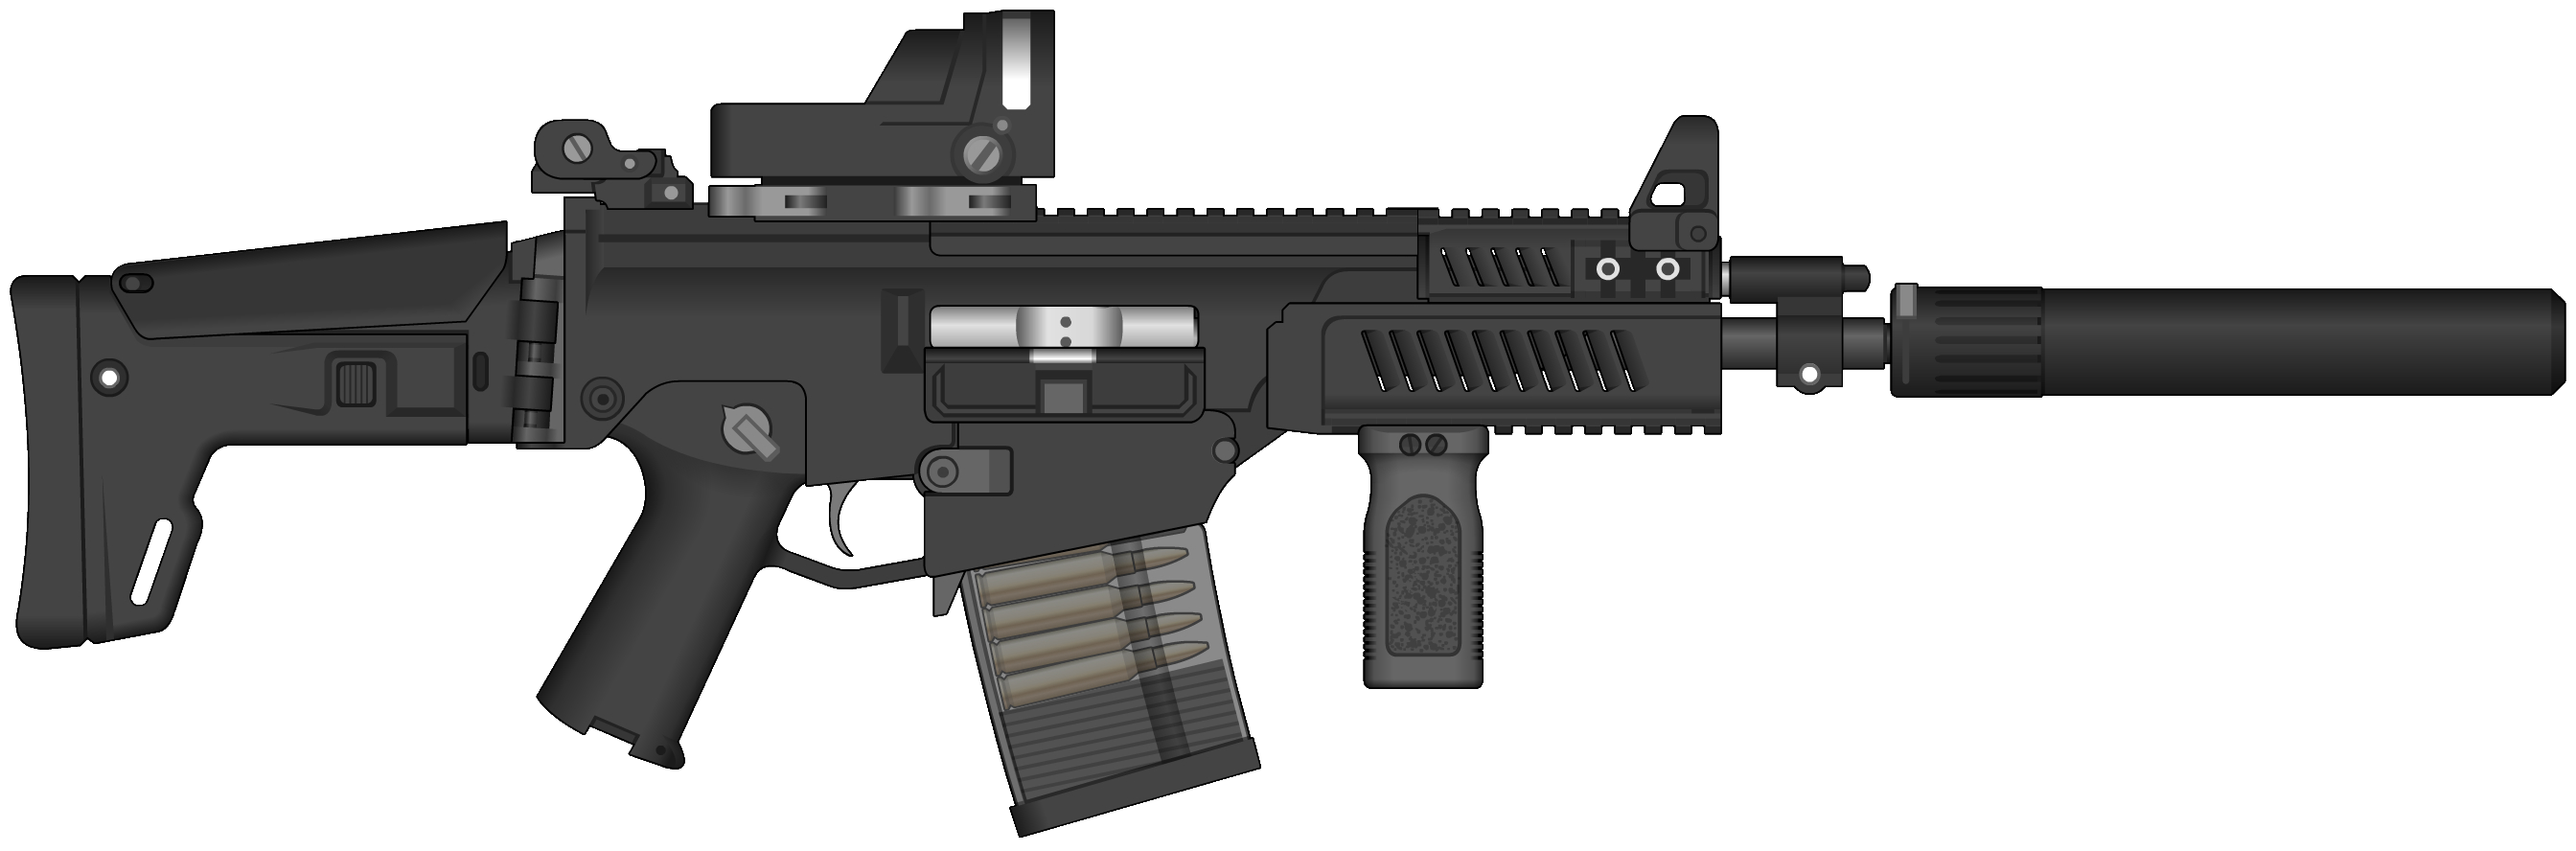 Clipart assault rifle image black and white download Assault Rifle Clipart PNG Image - PurePNG | Free transparent CC0 PNG ... image black and white download